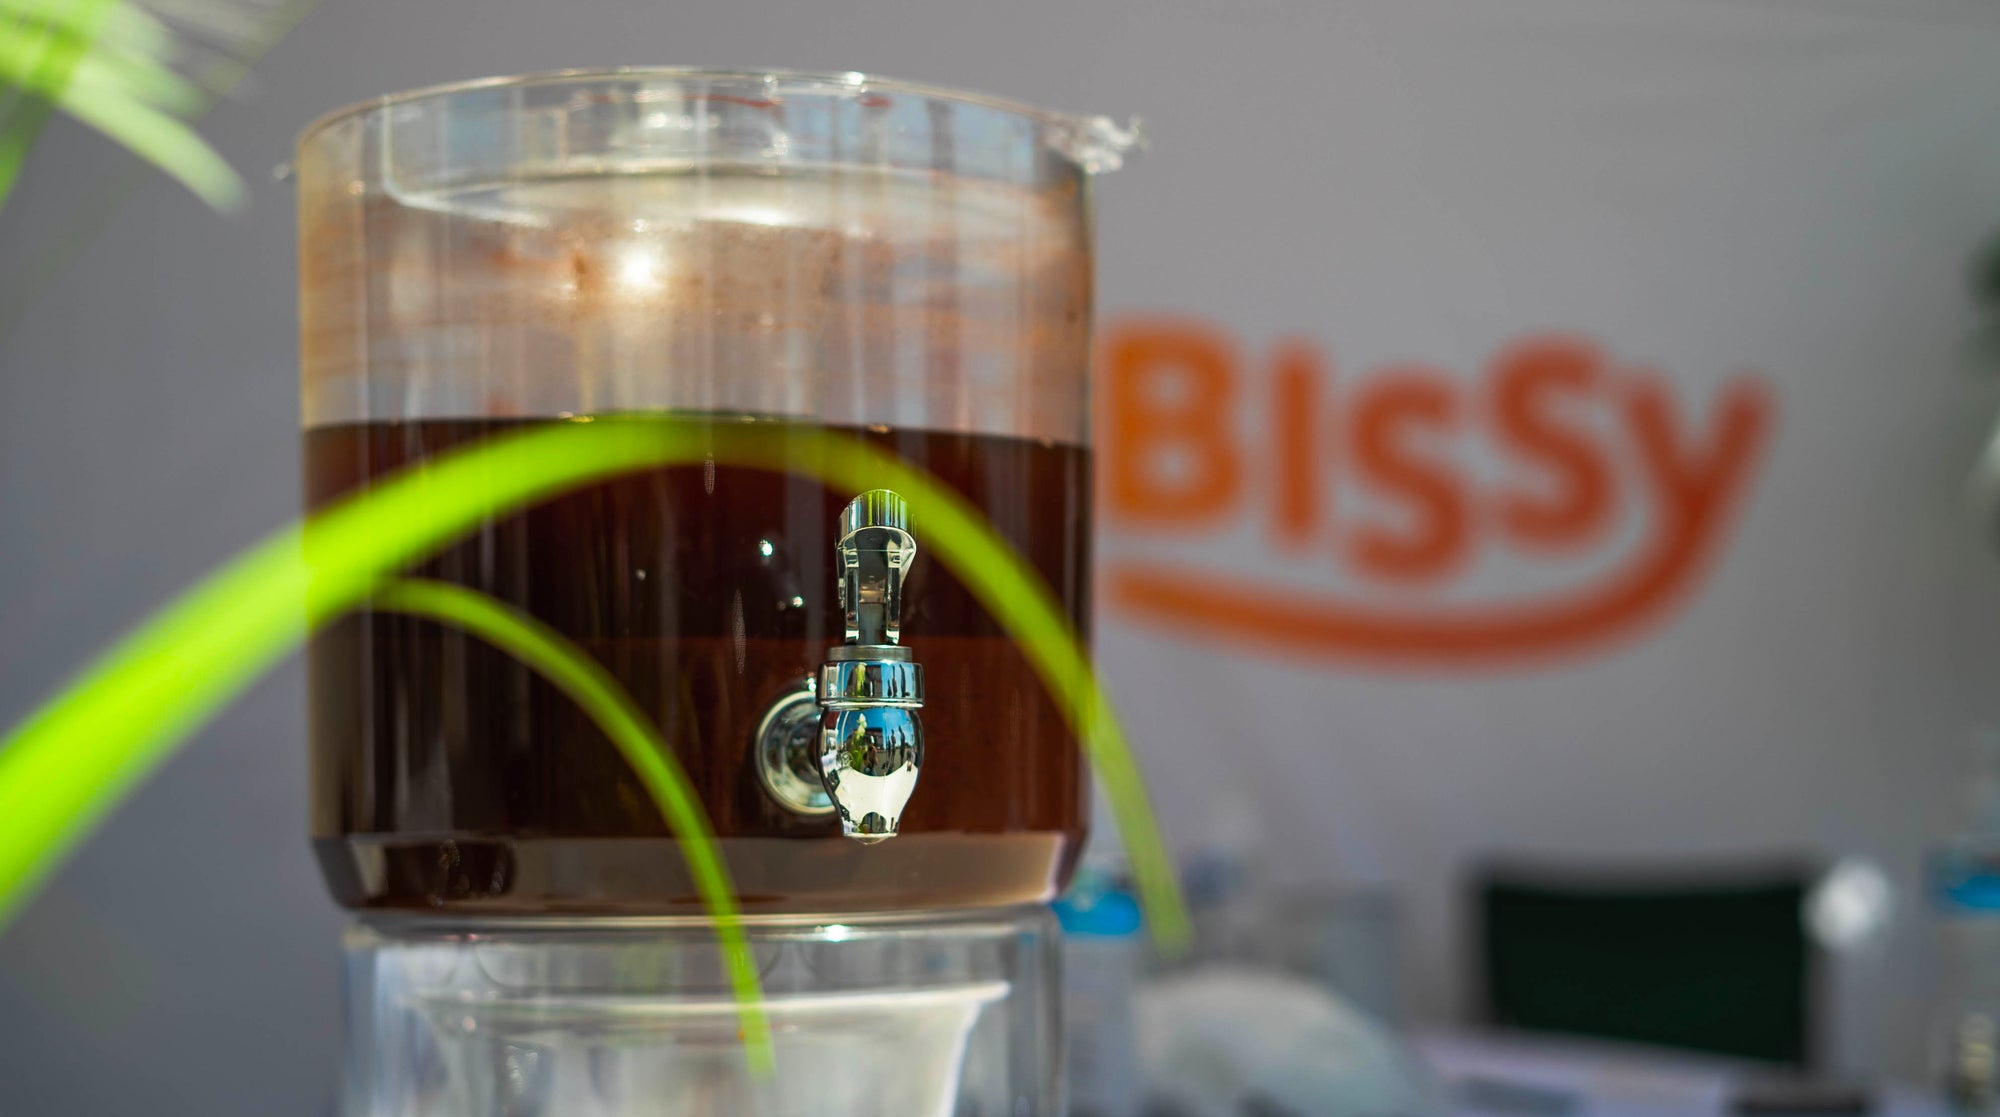 Bissy Royal Kolanut Fruit energy drink at event with plants